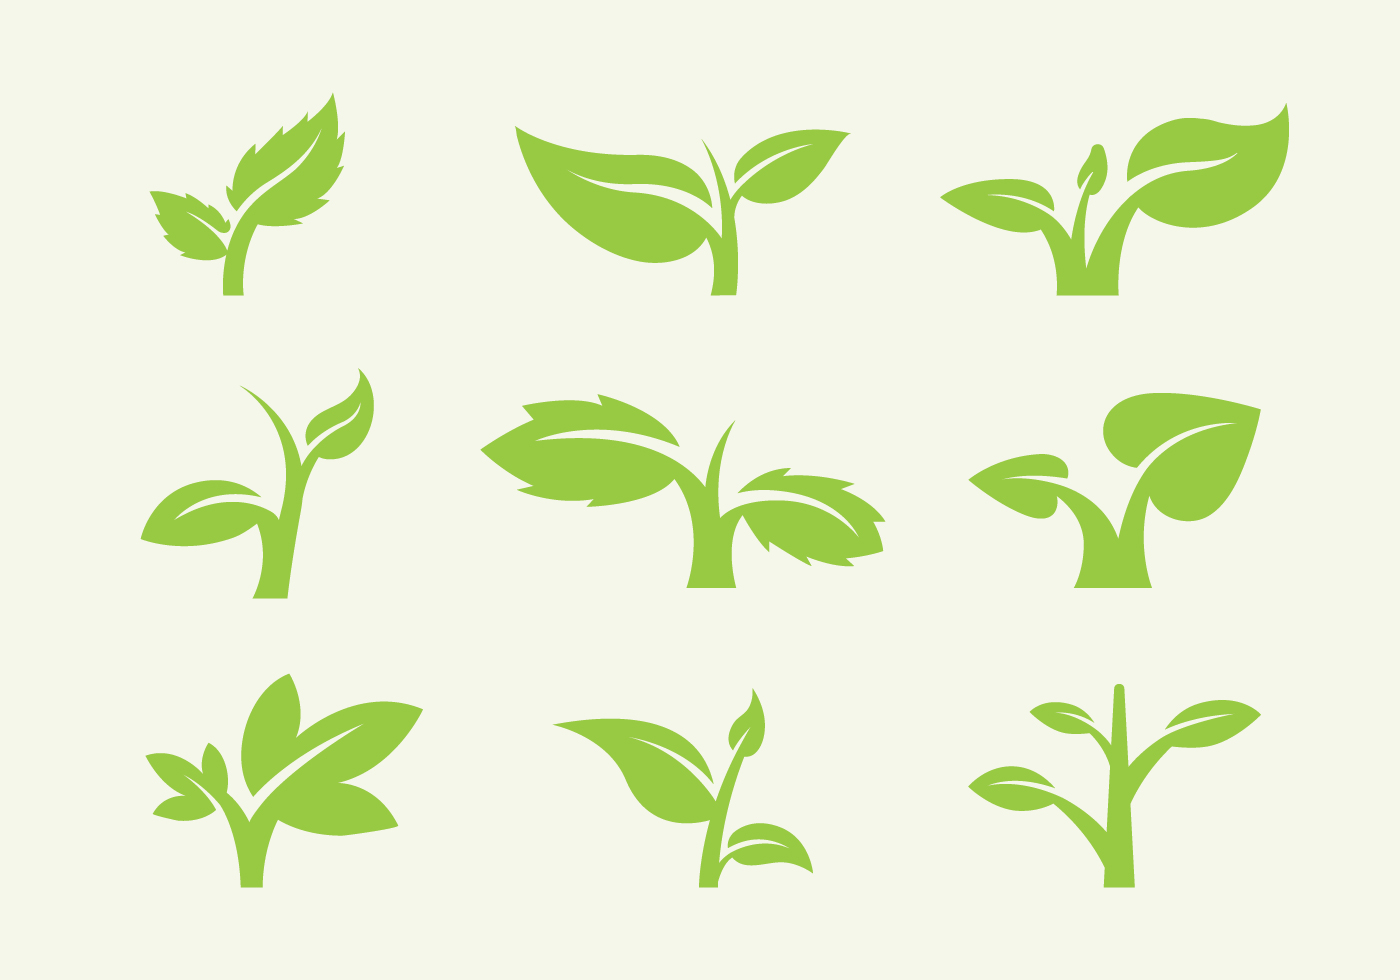 Leaf Icon Vectors - Download Free Vector Art, Stock Graphics & Images